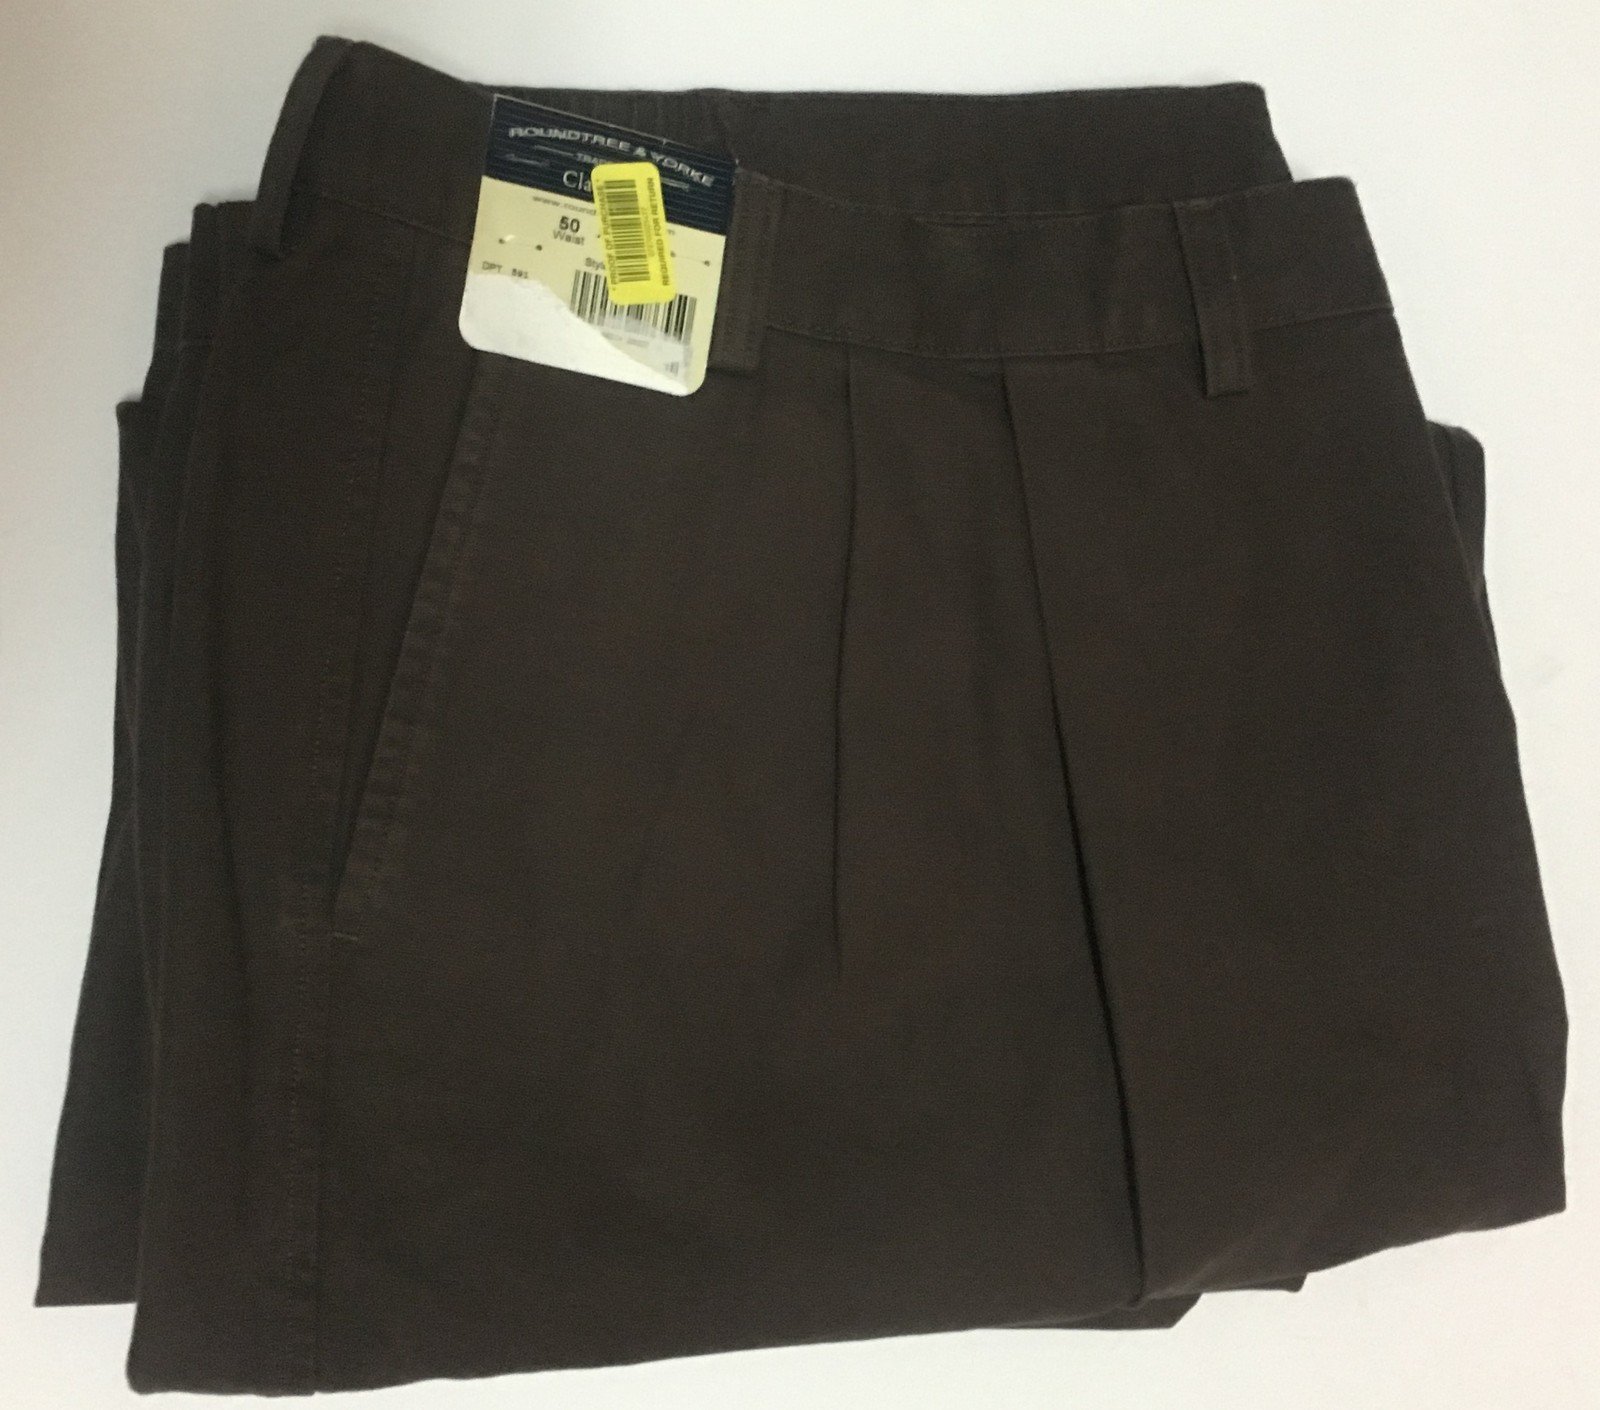 Roundtree & Yorke Brown Canvas Pants 50W x 30L NWT